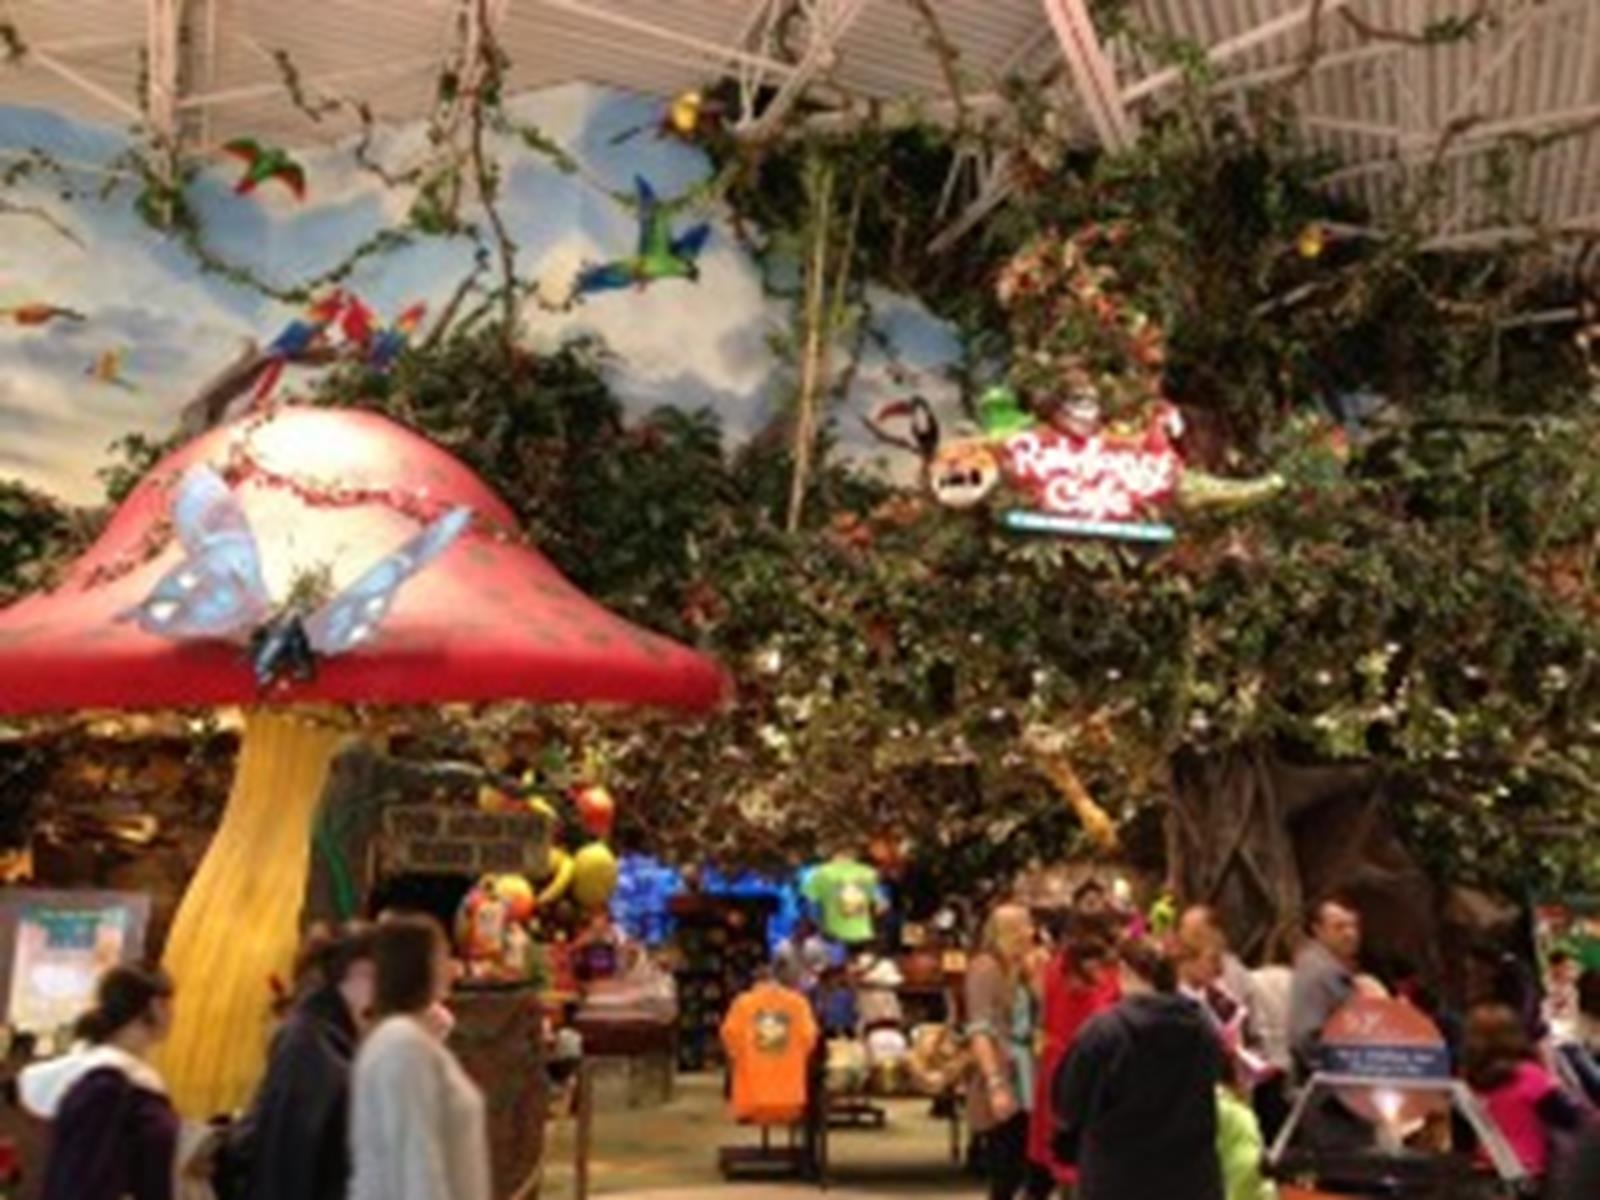 Rainforest Cafe in Nashville, Tennessee